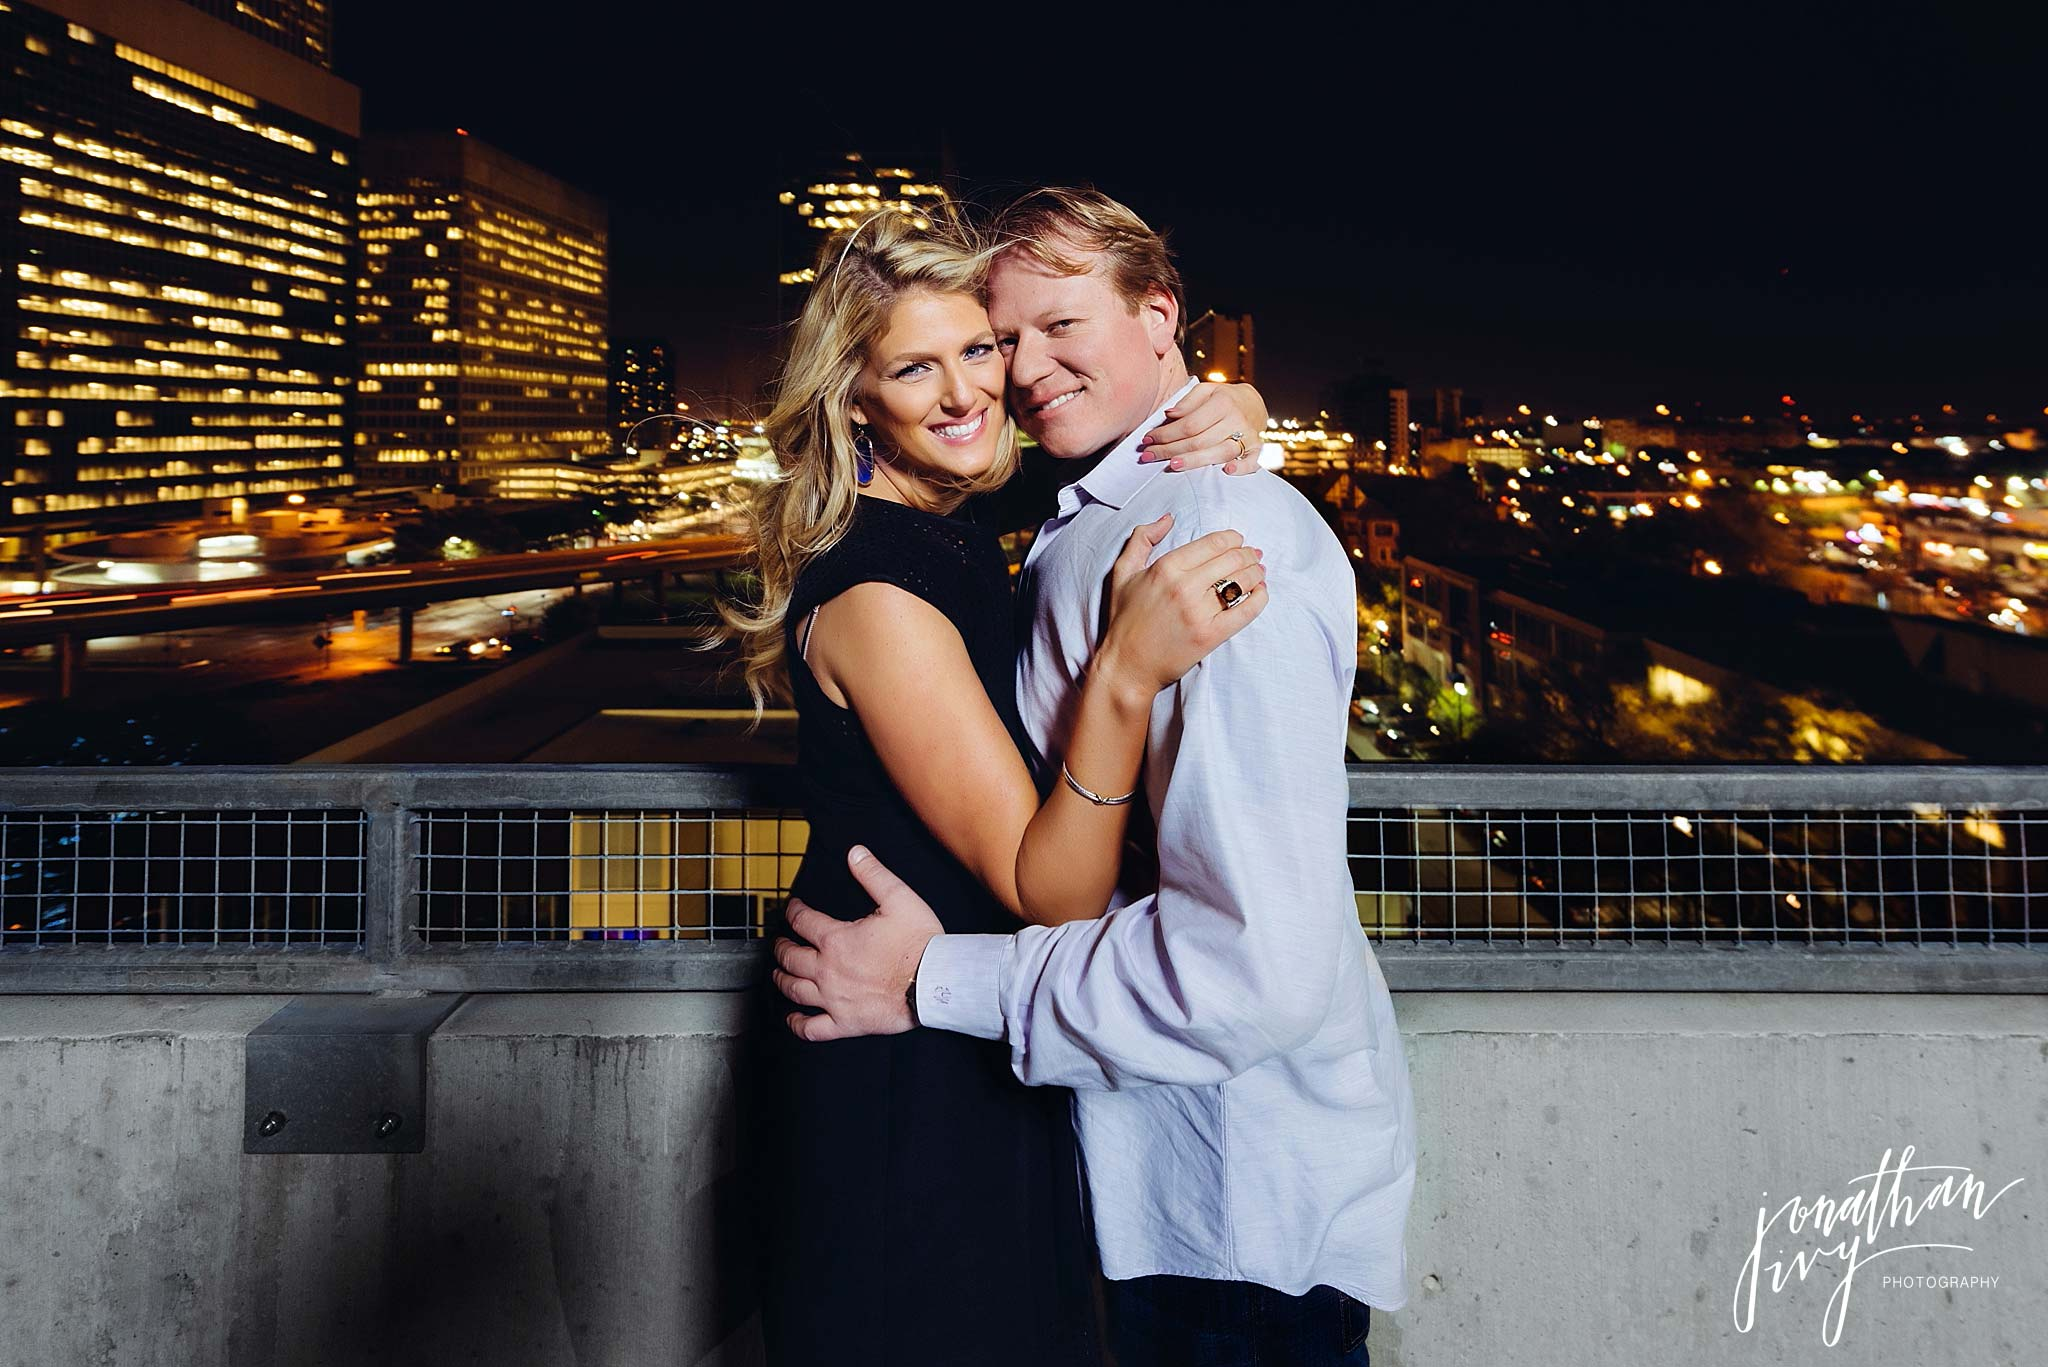 Nighttime houston engagement photos